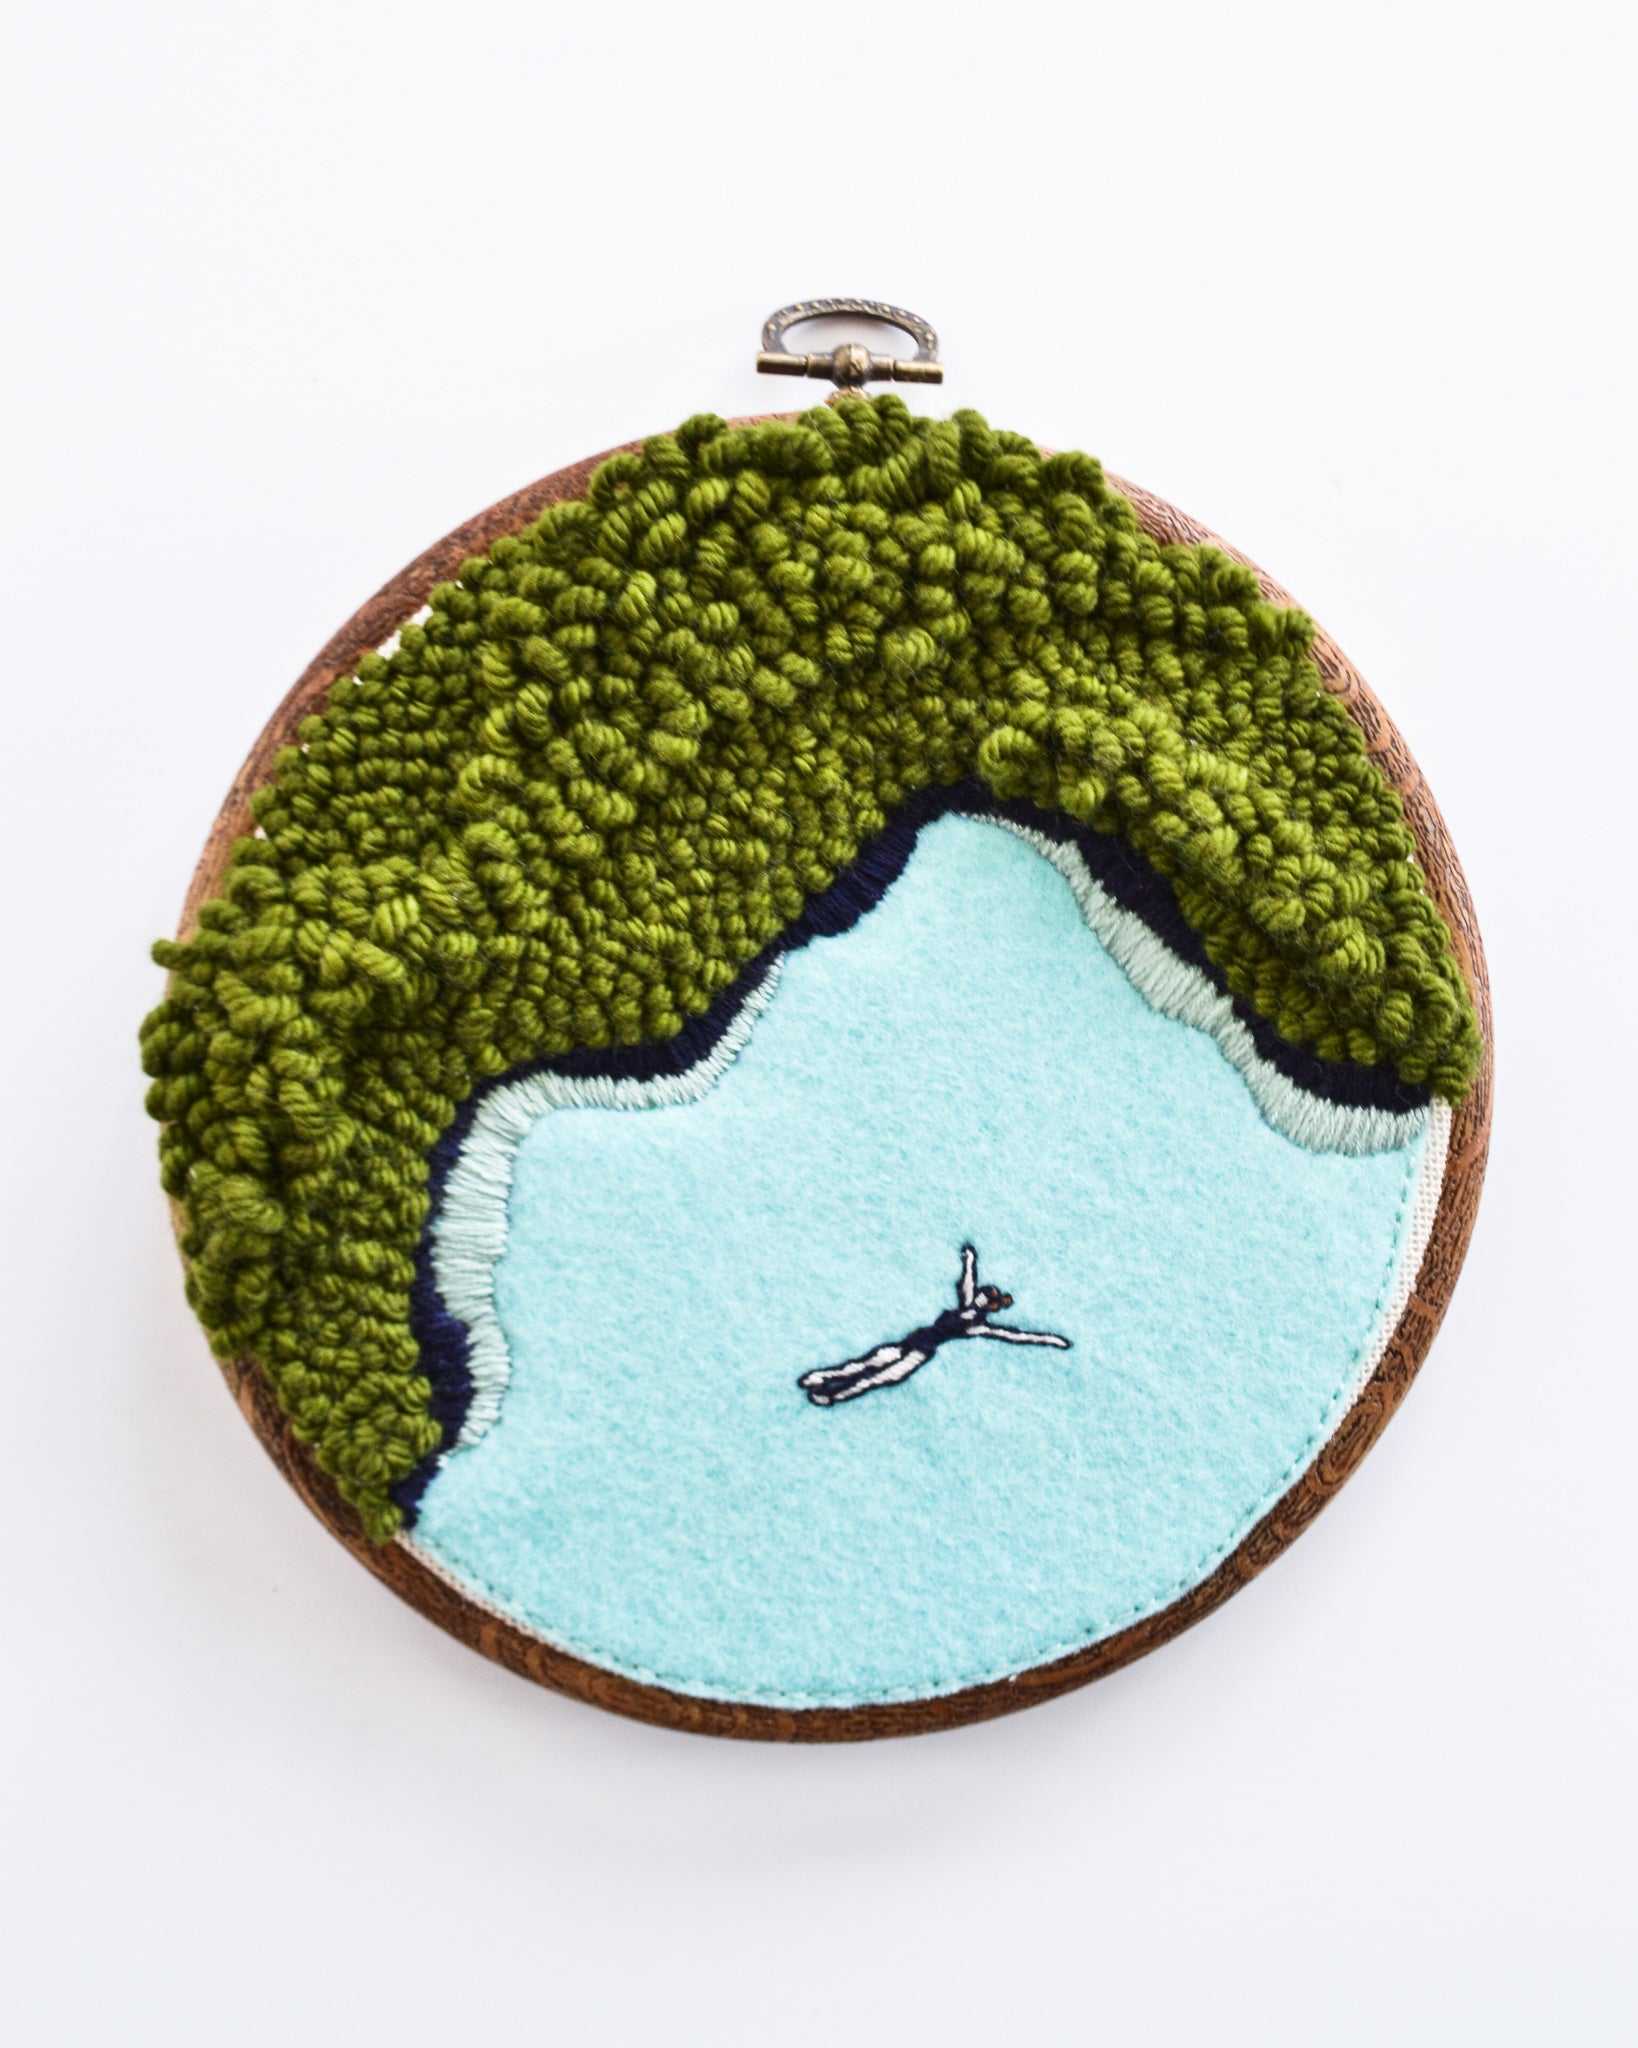 Mini Lagoon No. 25 Original Art - 6 in. hoop